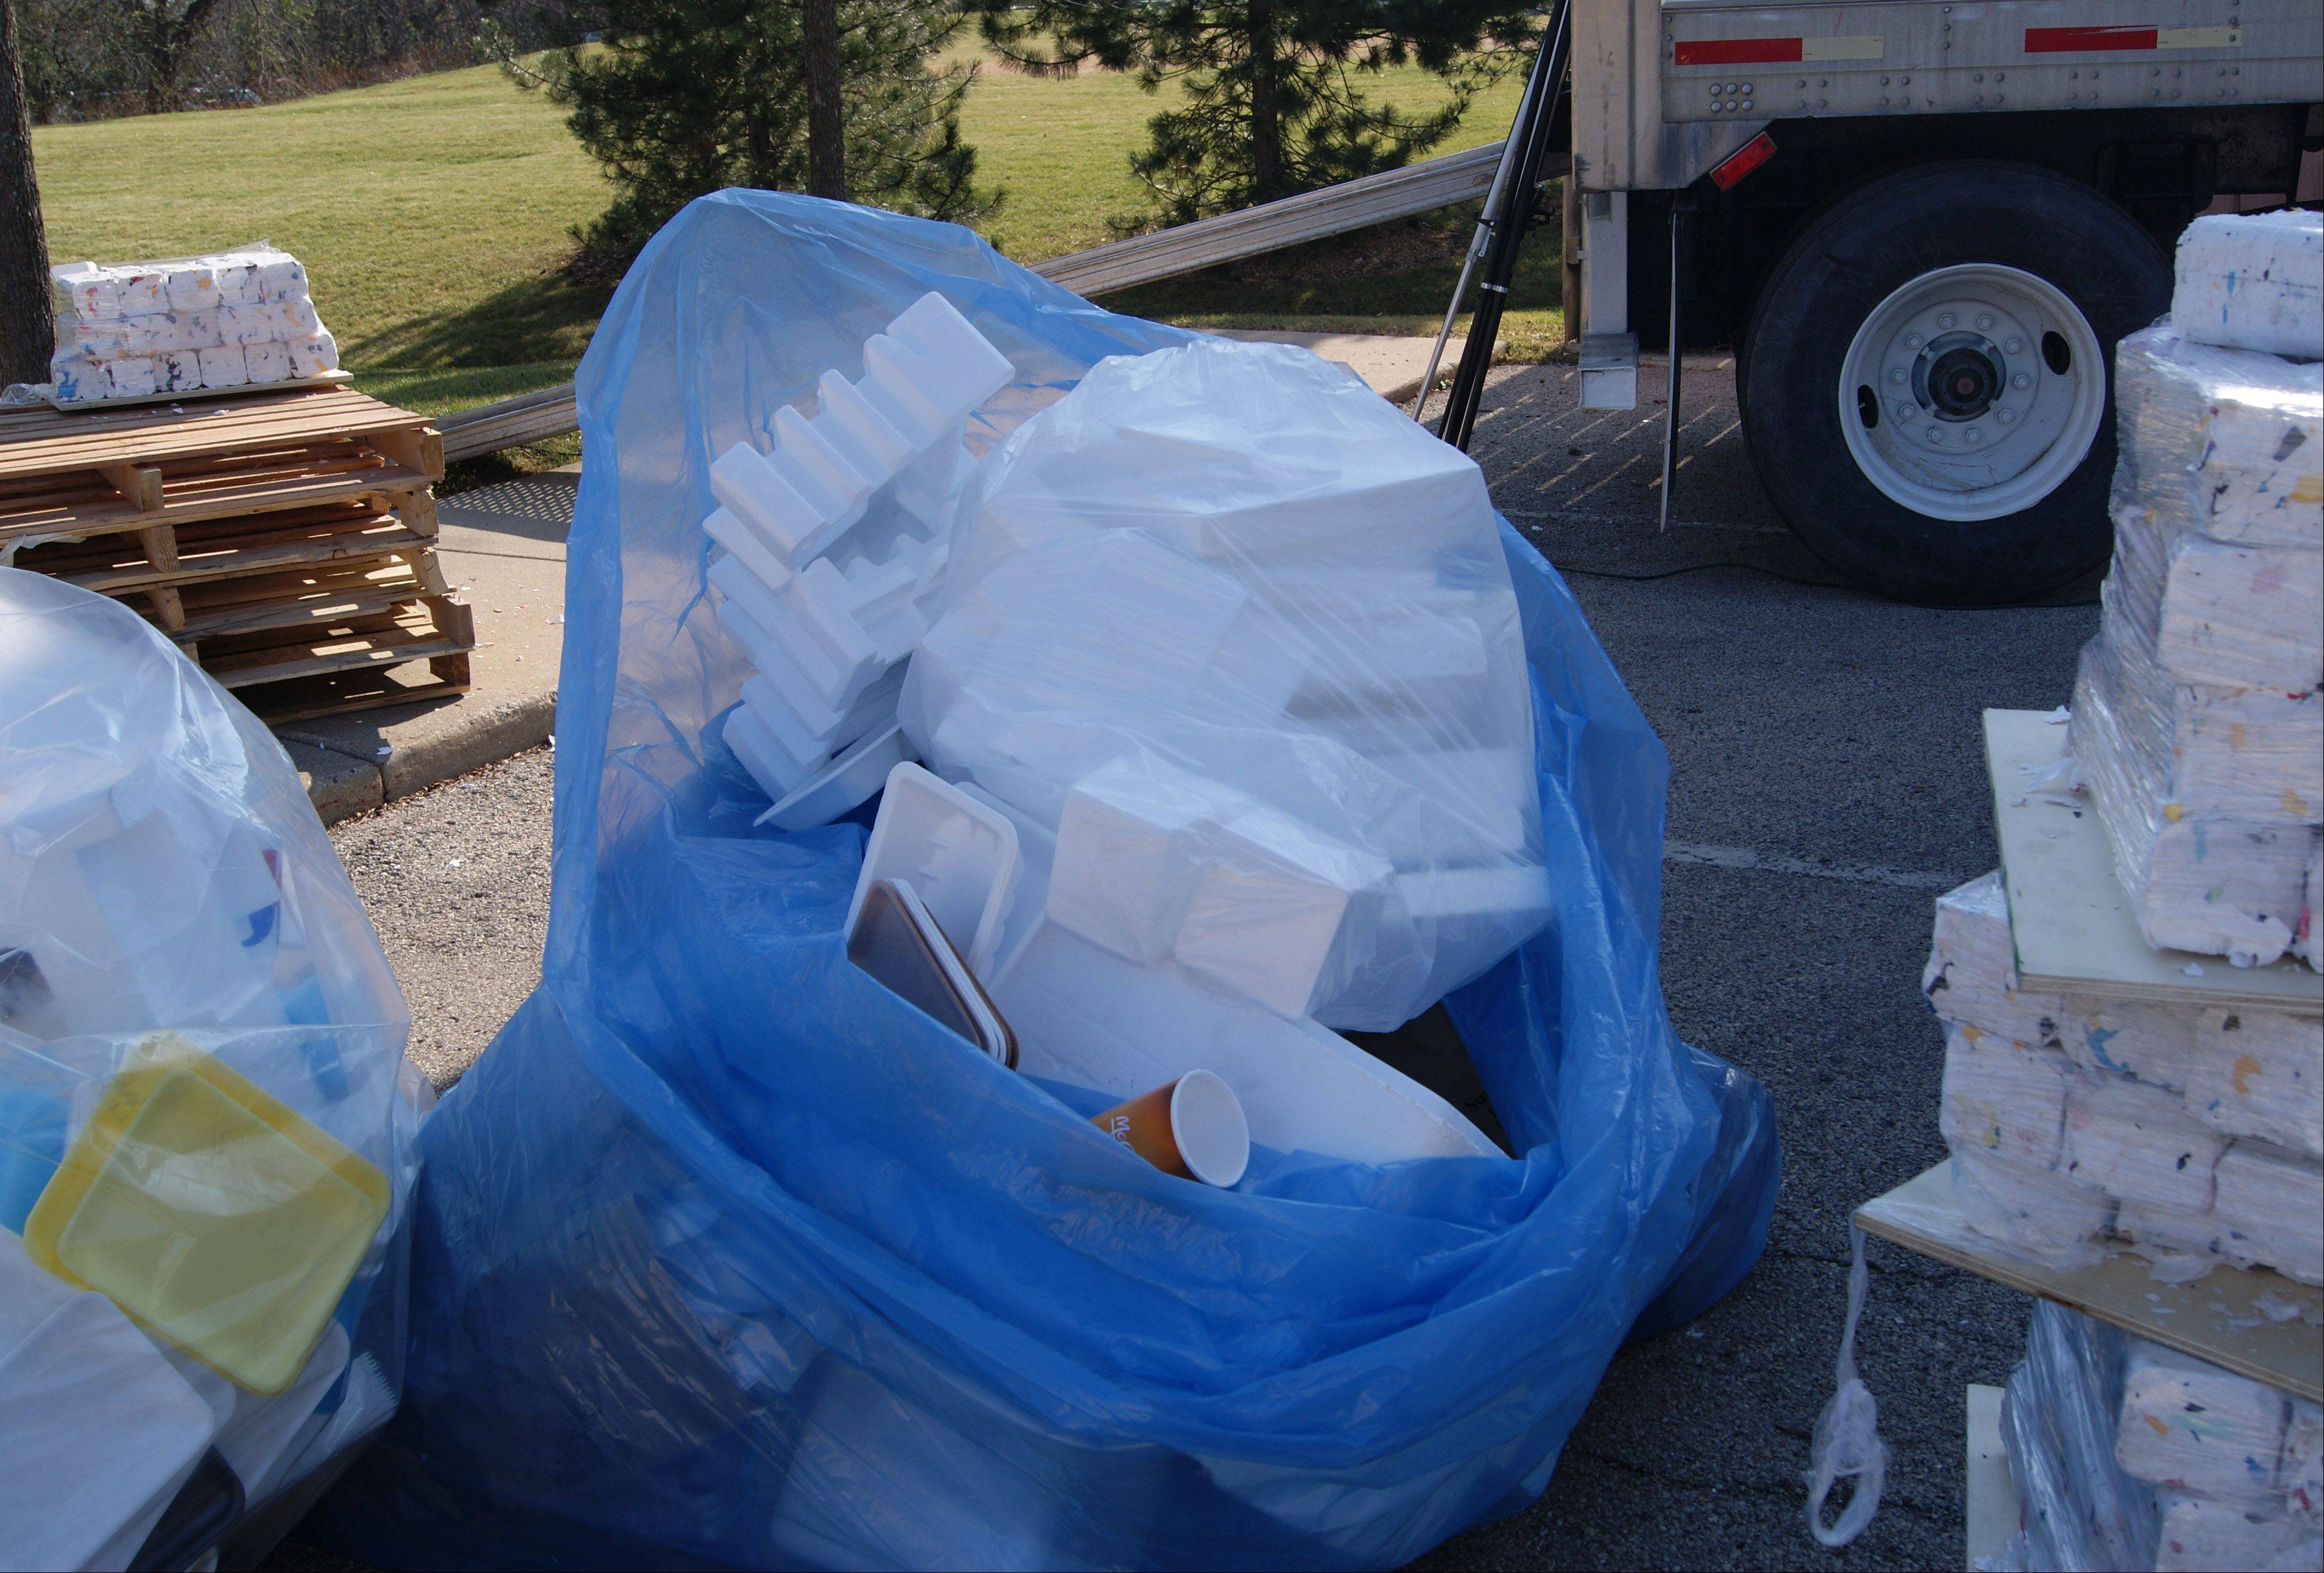 Foam items collected through Highland Park�s recycling program.